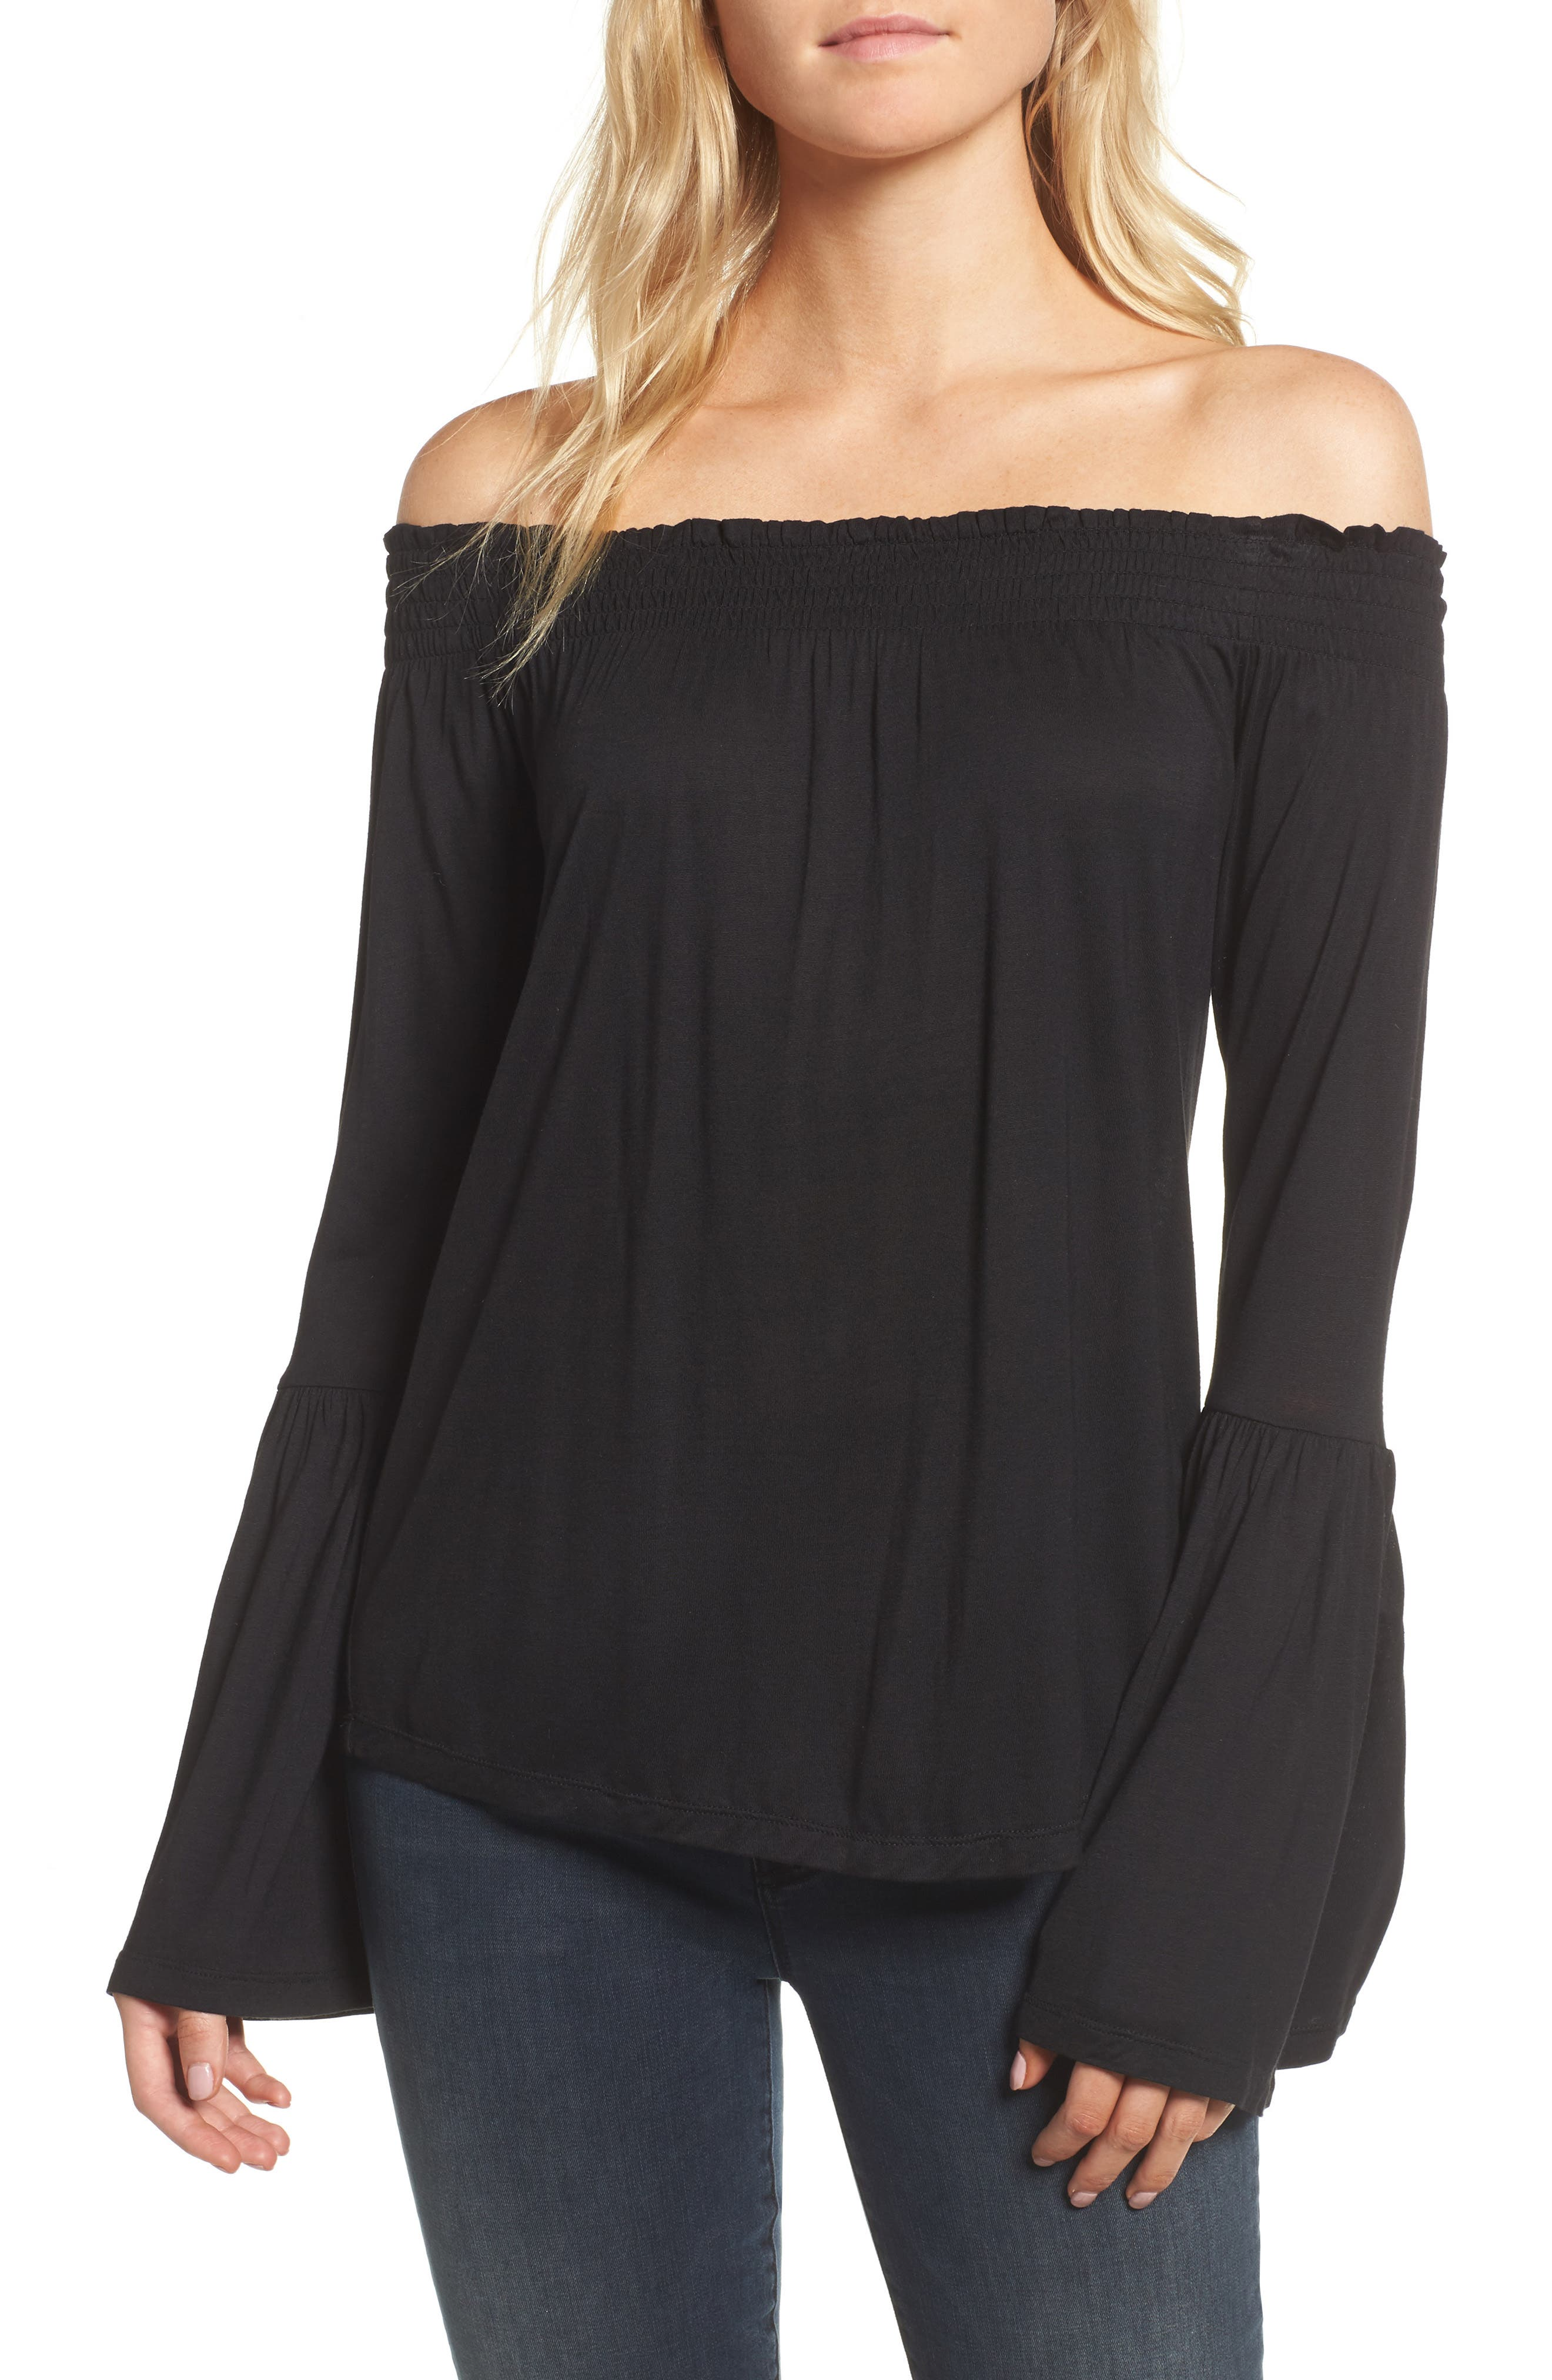 Luck Off the Shoulder Top,                             Main thumbnail 1, color,